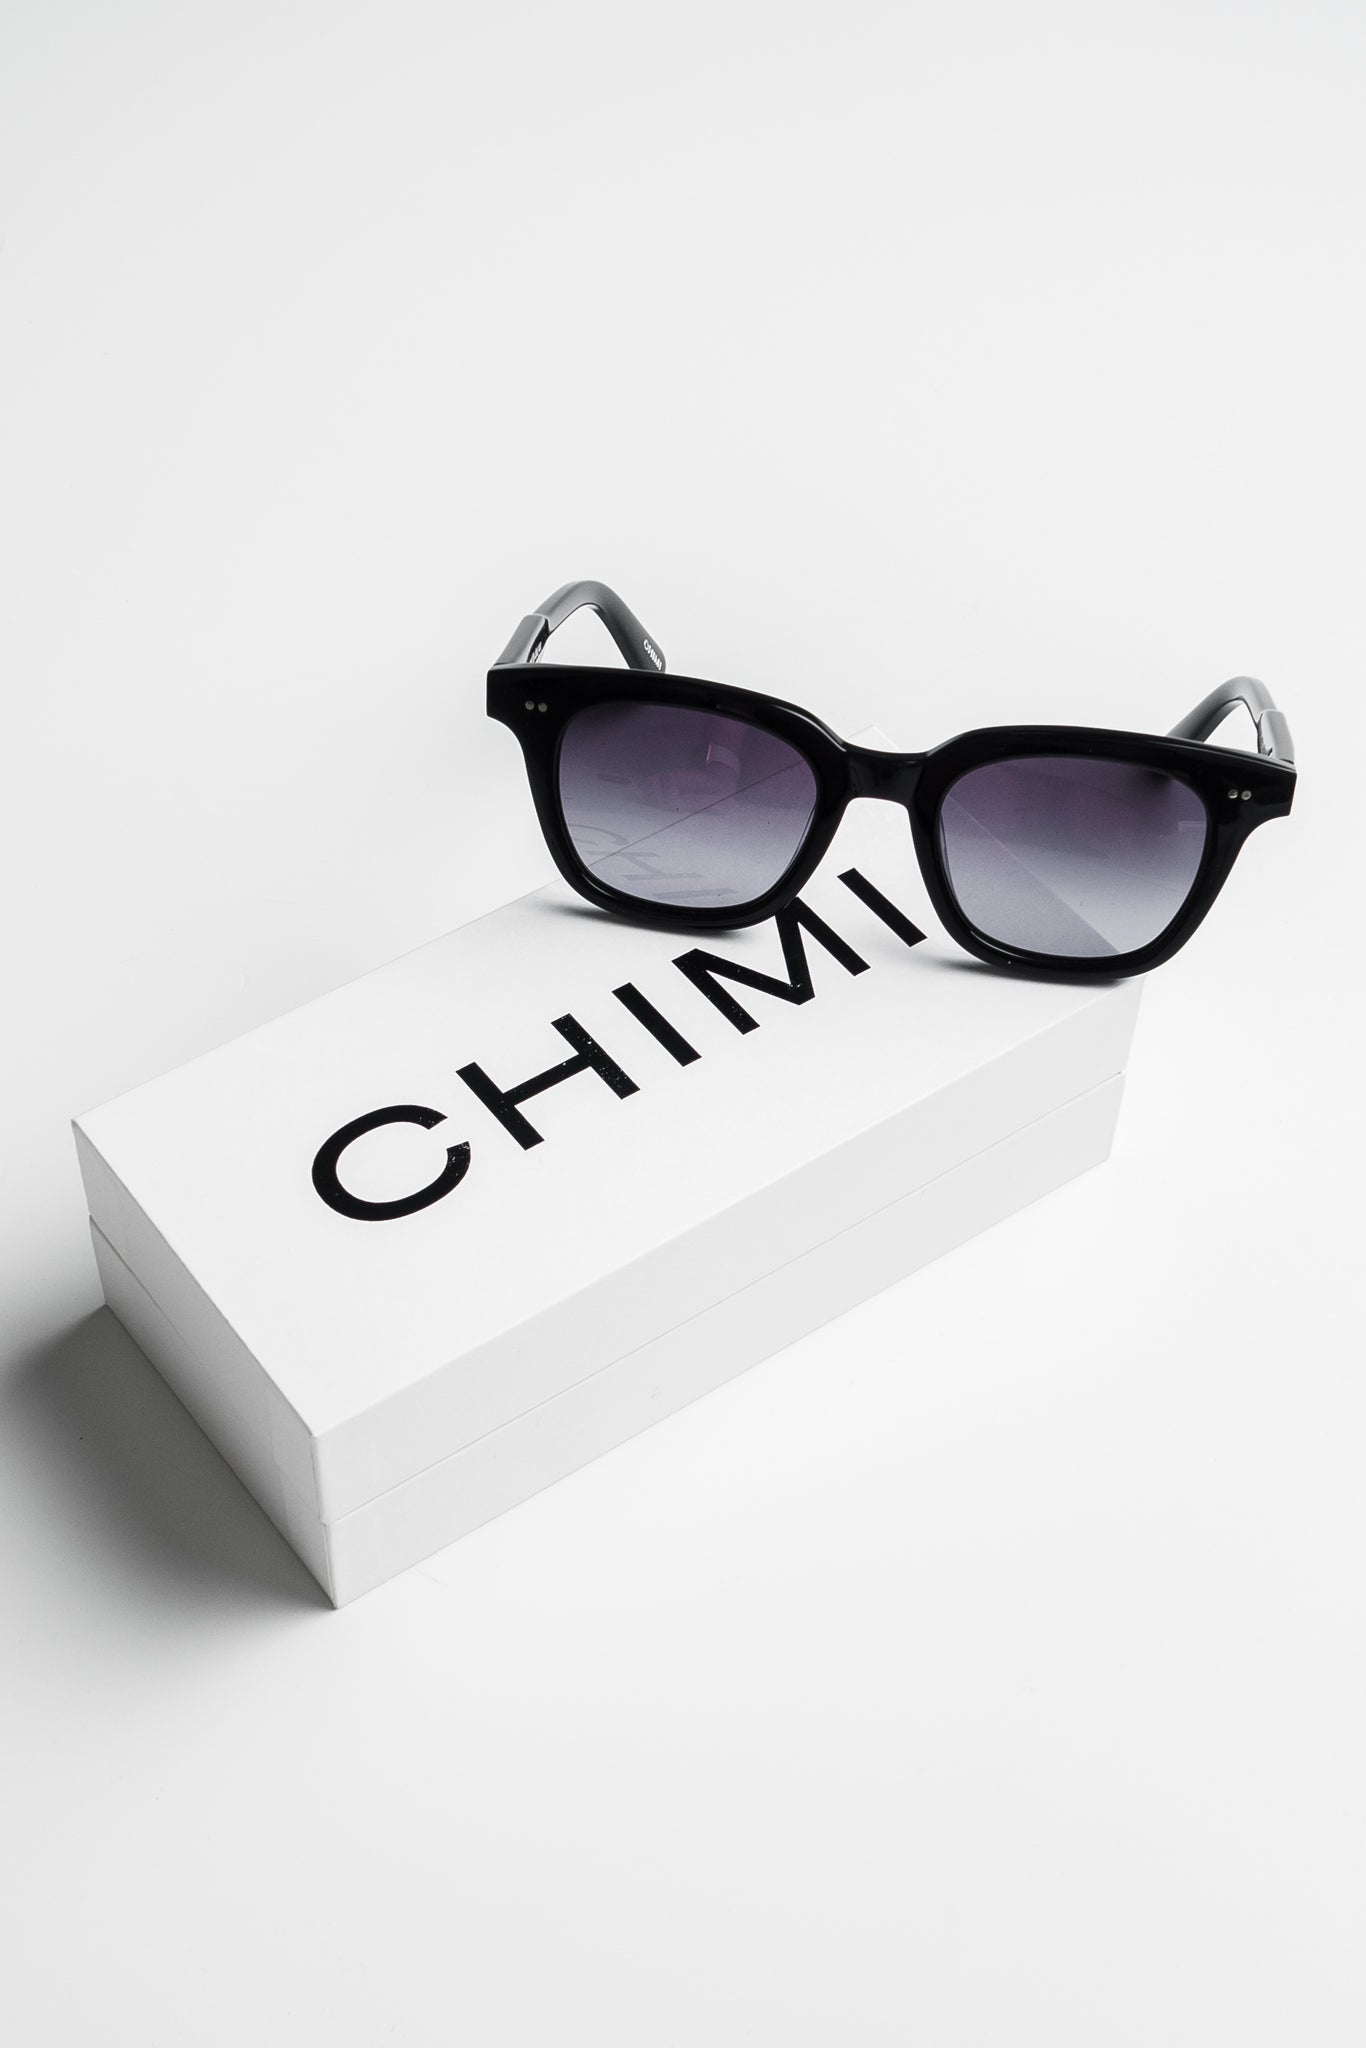 CHiMi Extended collection aurinkolasit - #101 black